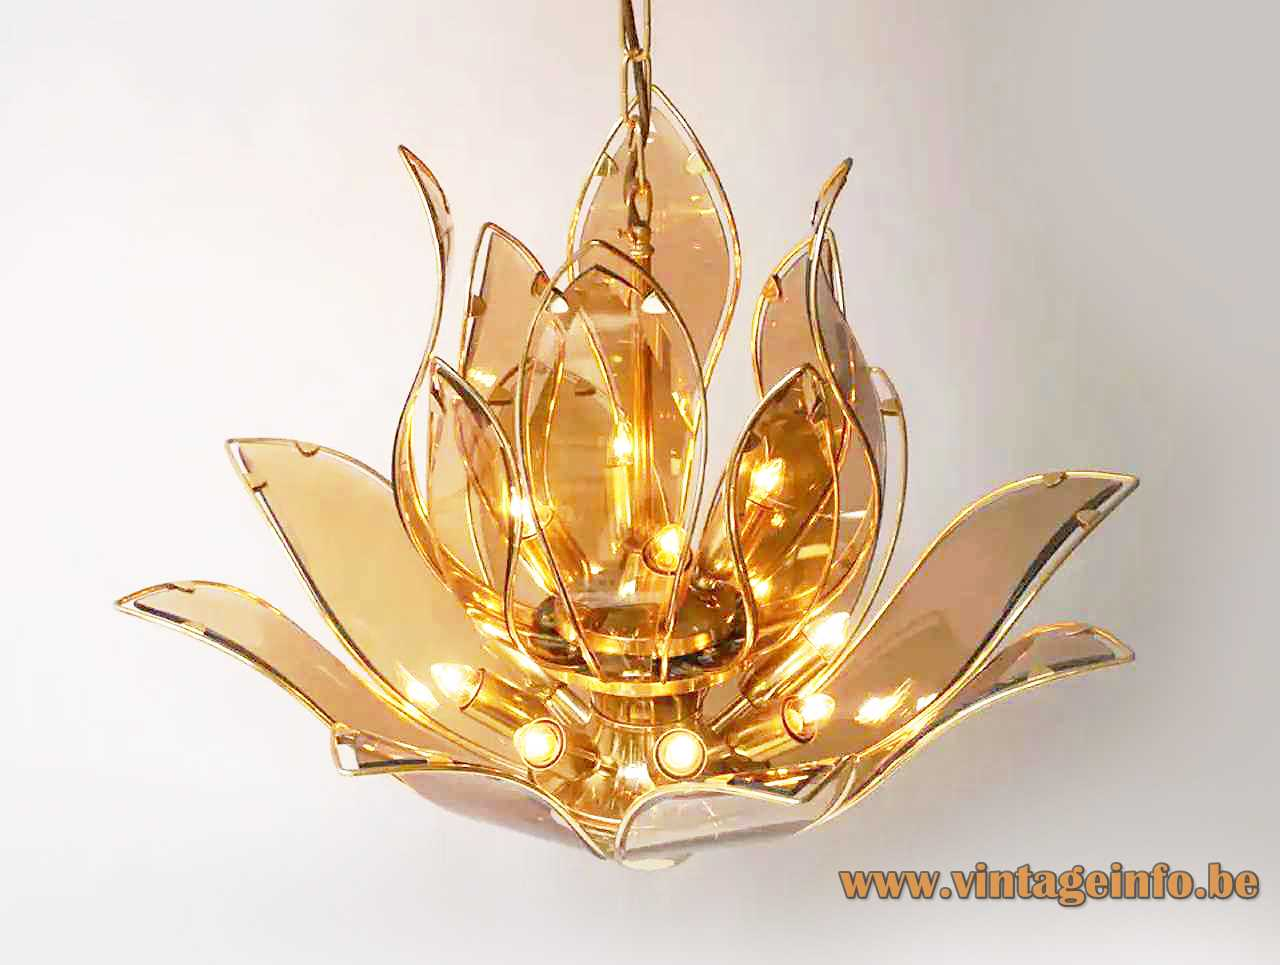 Lotus flowers glass chandelier brown curved leaves brass plated iron frame & chain 1980s 1990s Hong Kong